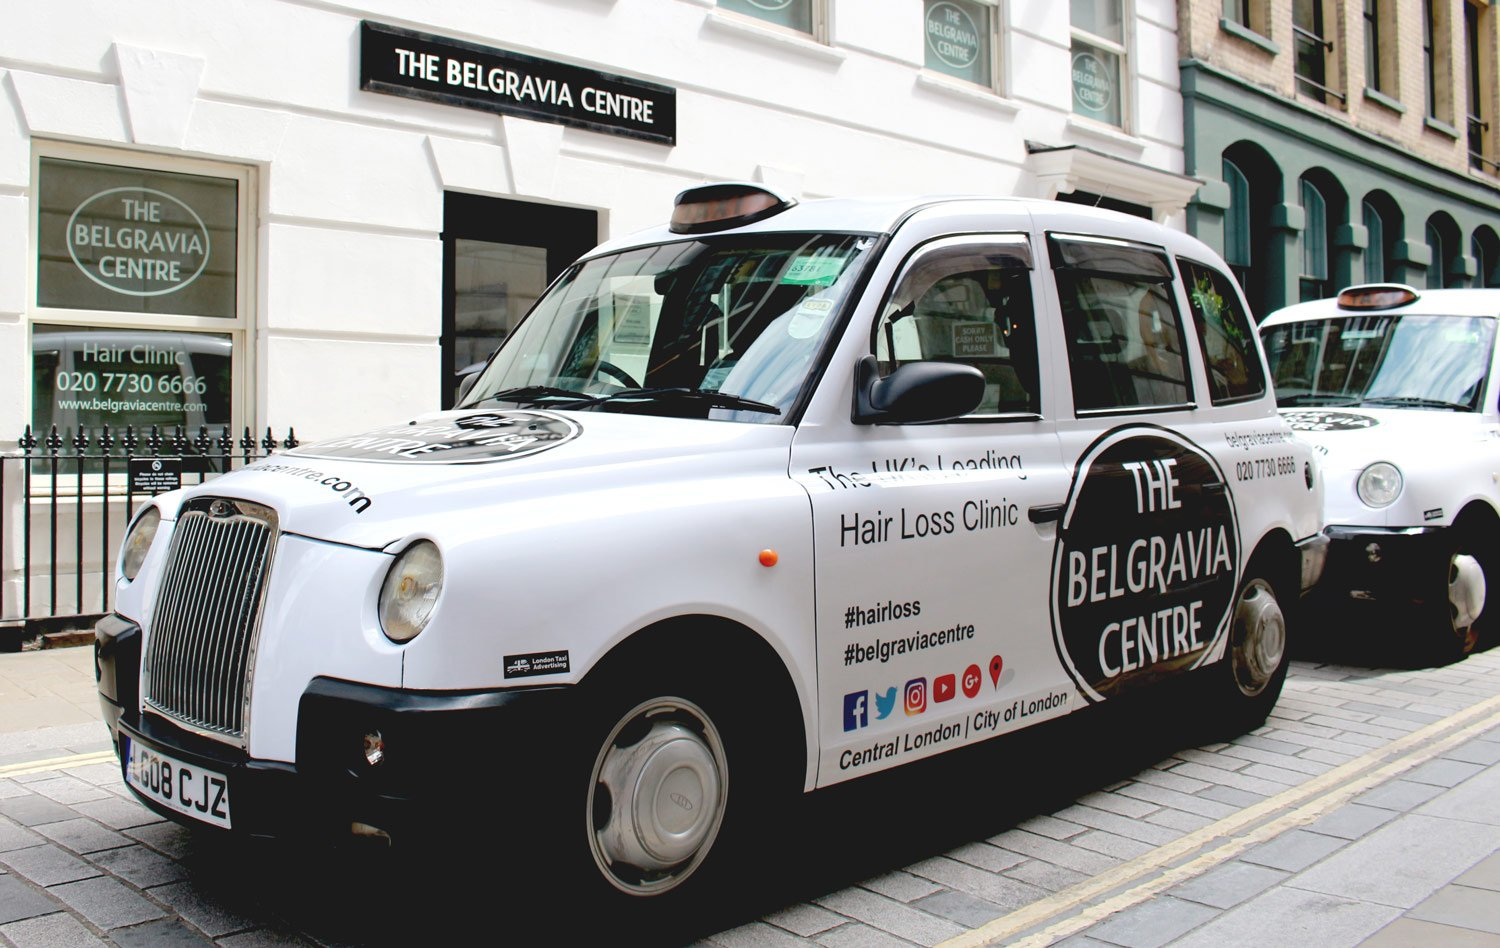 The belgravia centre taxi advertising